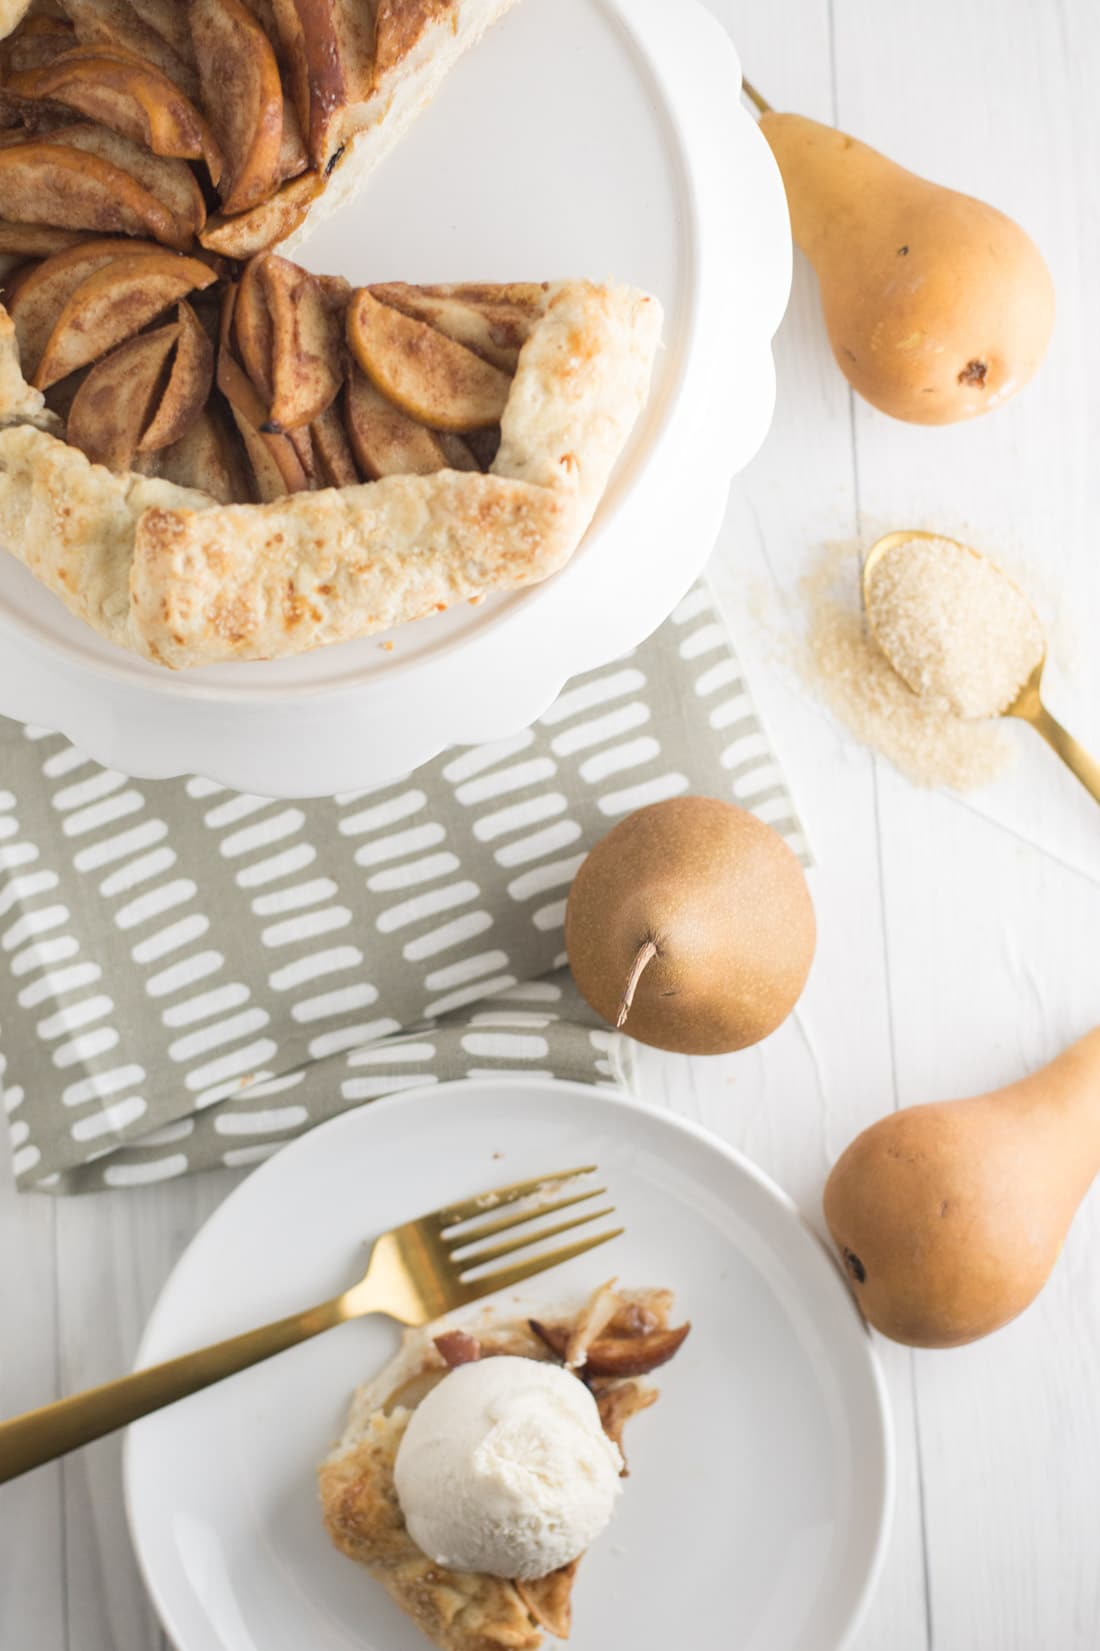 Vegan Pear Galette -- This vegan galette is made up of a perfectly flakey pie crust and piled high with cinnamon ginger pear slices. Baked to perfection, you won't believe how simple this dessert recipe is to make | mindfulavocado